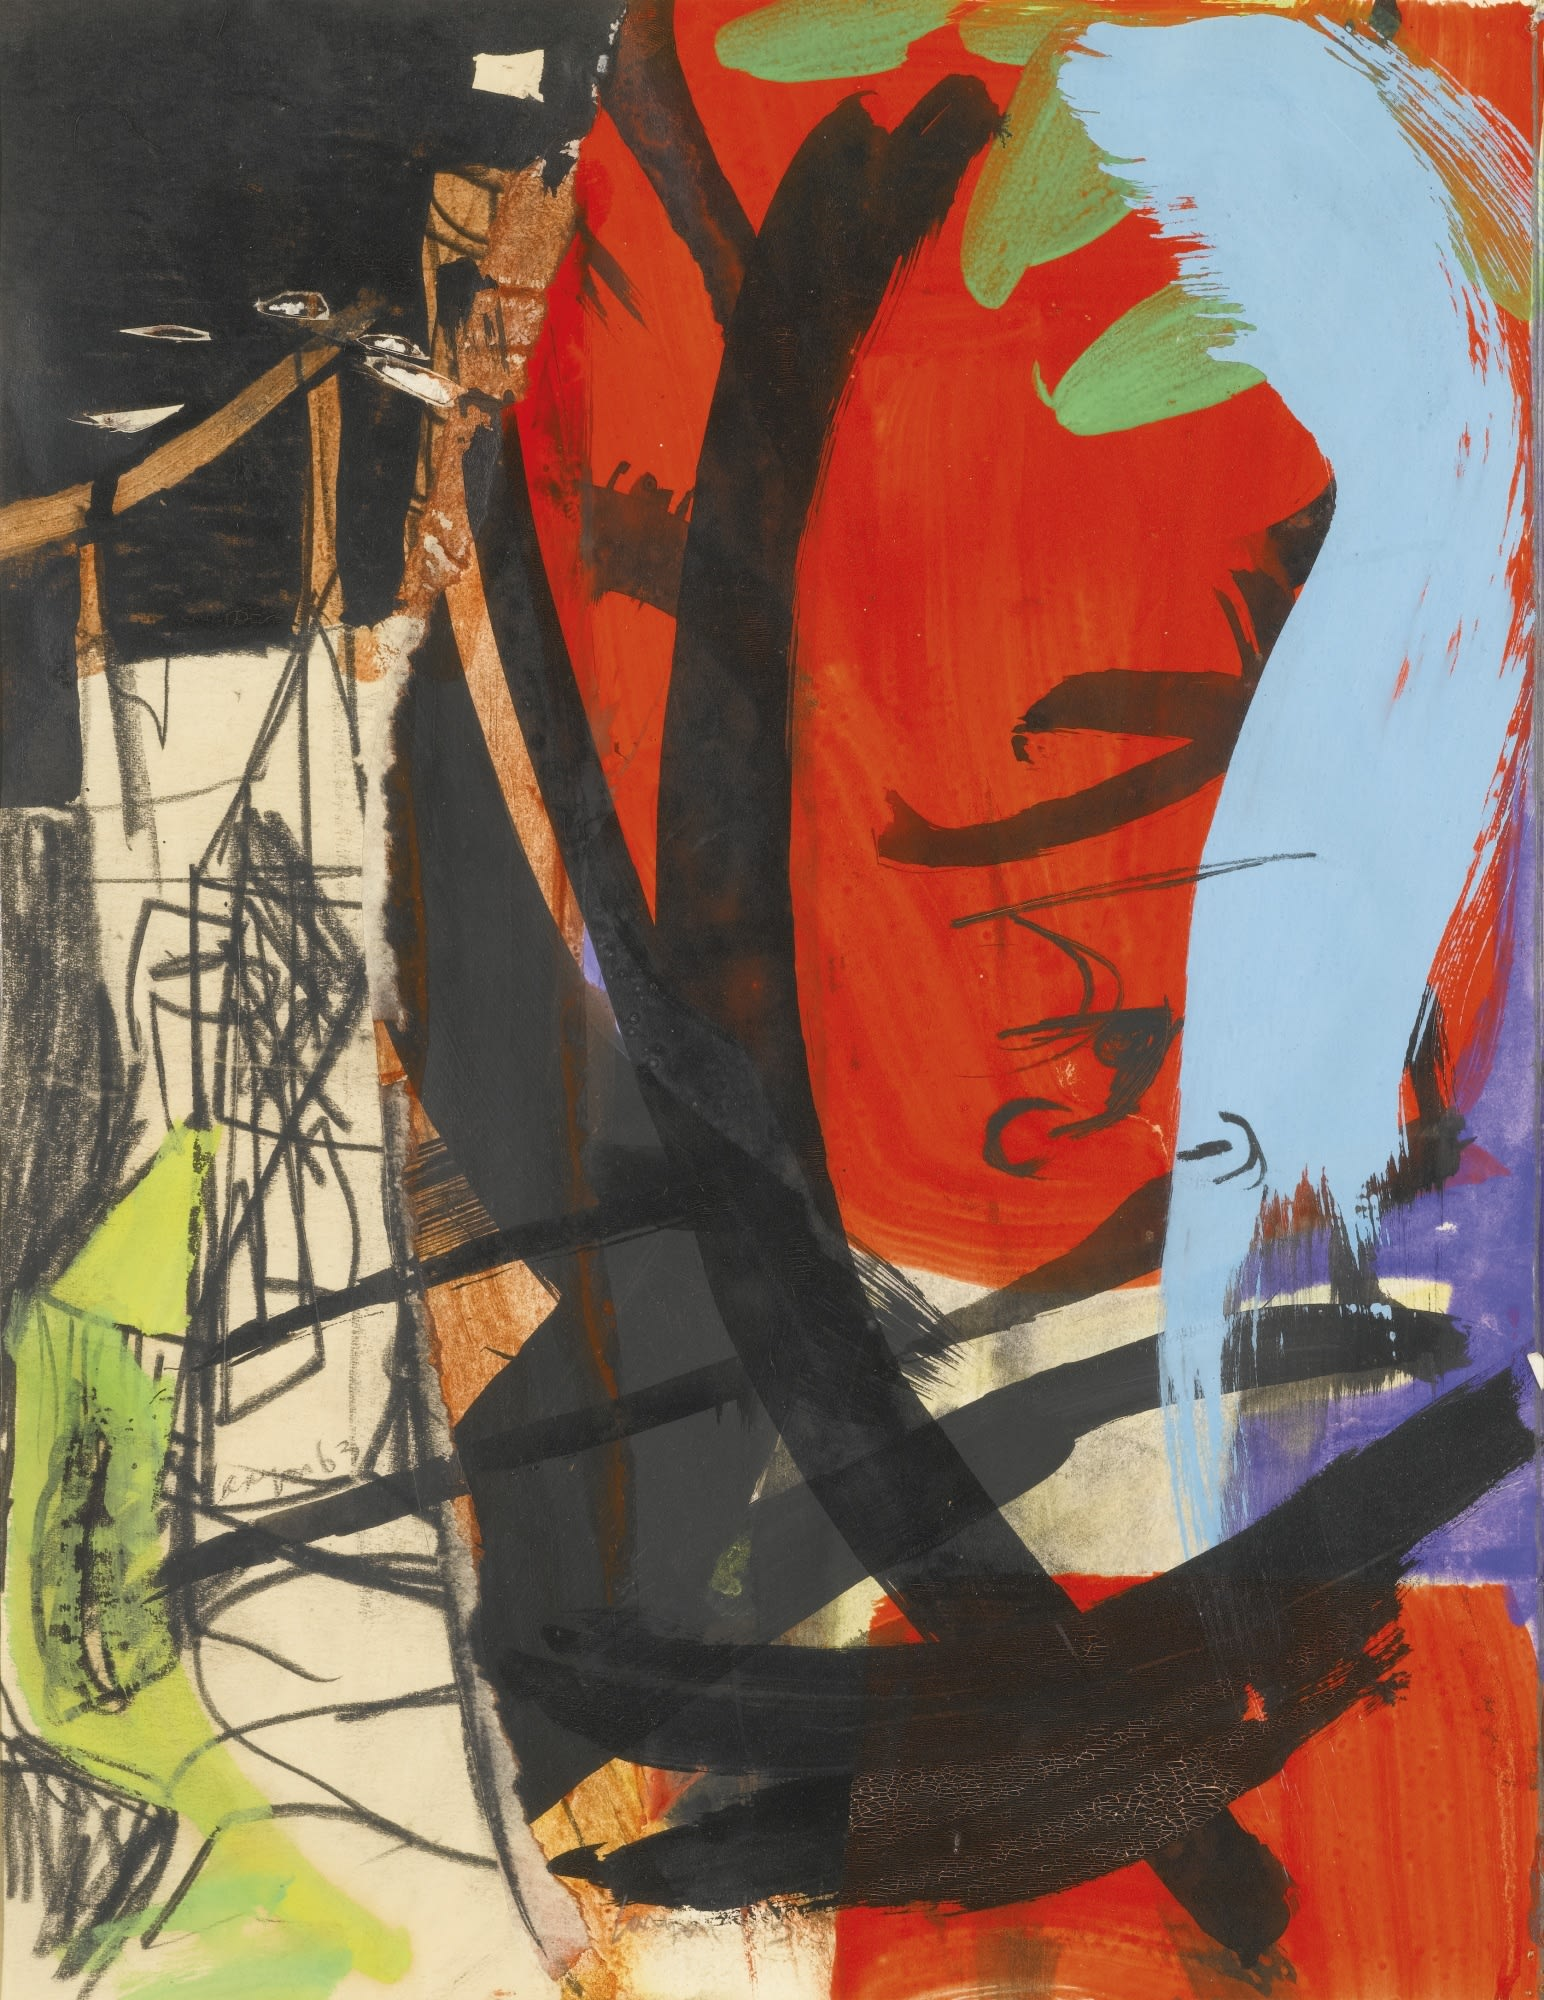 "<span class=""link fancybox-details-link""><a href=""/artists/46-peter-lanyon/works/1554-peter-lanyon-red-leaf-and-tower-1963/"">View Detail Page</a></span><div class=""artist""><strong>Peter Lanyon</strong></div> 1918–1964 <div class=""title""><em>Red Leaf and Tower</em>, 1963</div> <div class=""signed_and_dated"">signed and dated '63'</div> <div class=""medium"">oil, gouache, charcoal and collage on paper</div> <div class=""dimensions"">35 x 27 cm</div><div class=""copyright_line"">@ The Estate of Peter Lanyon</div>"